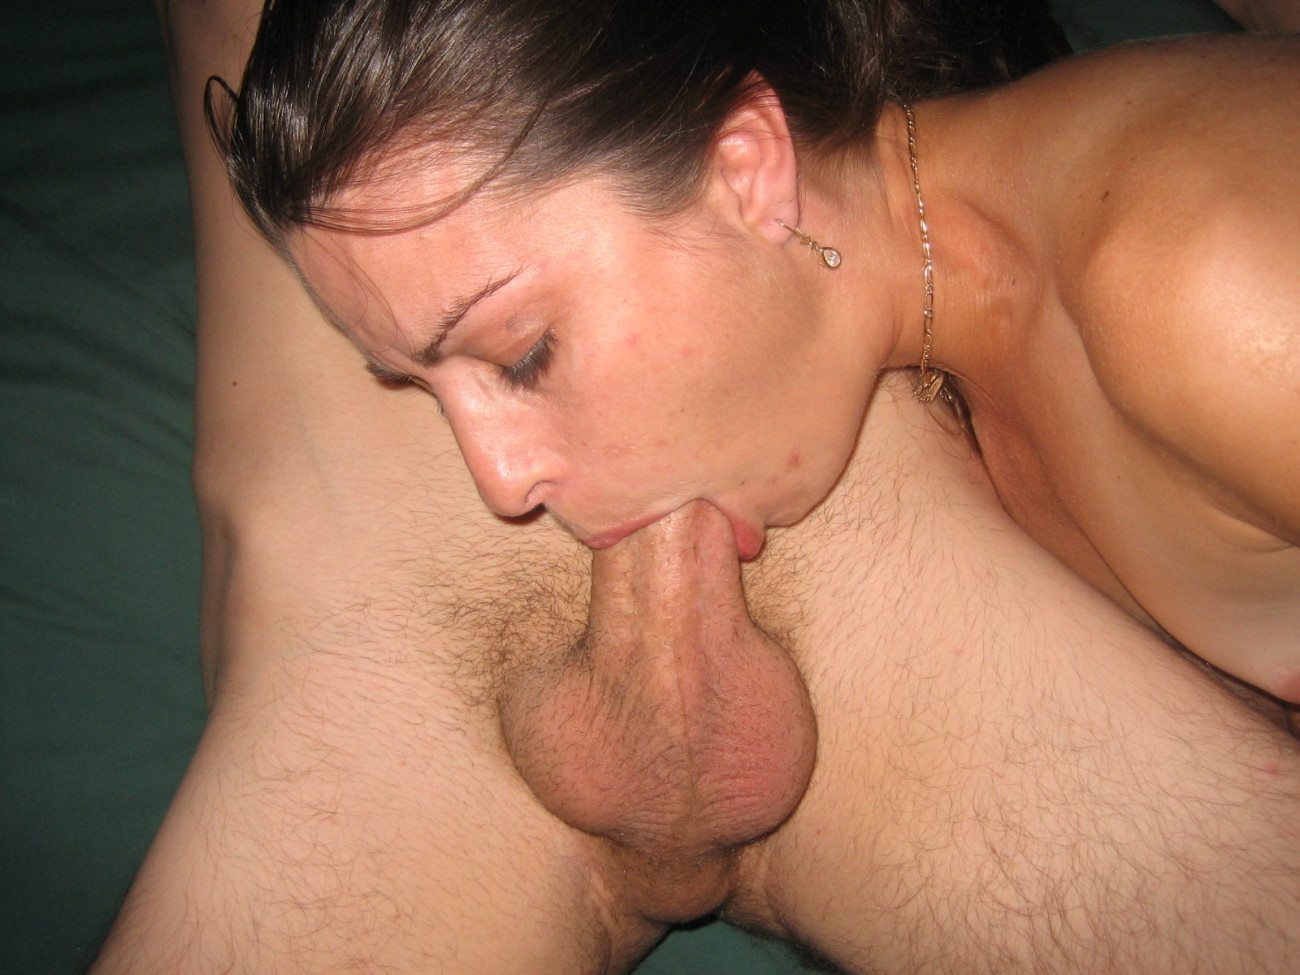 Homemade anal oral